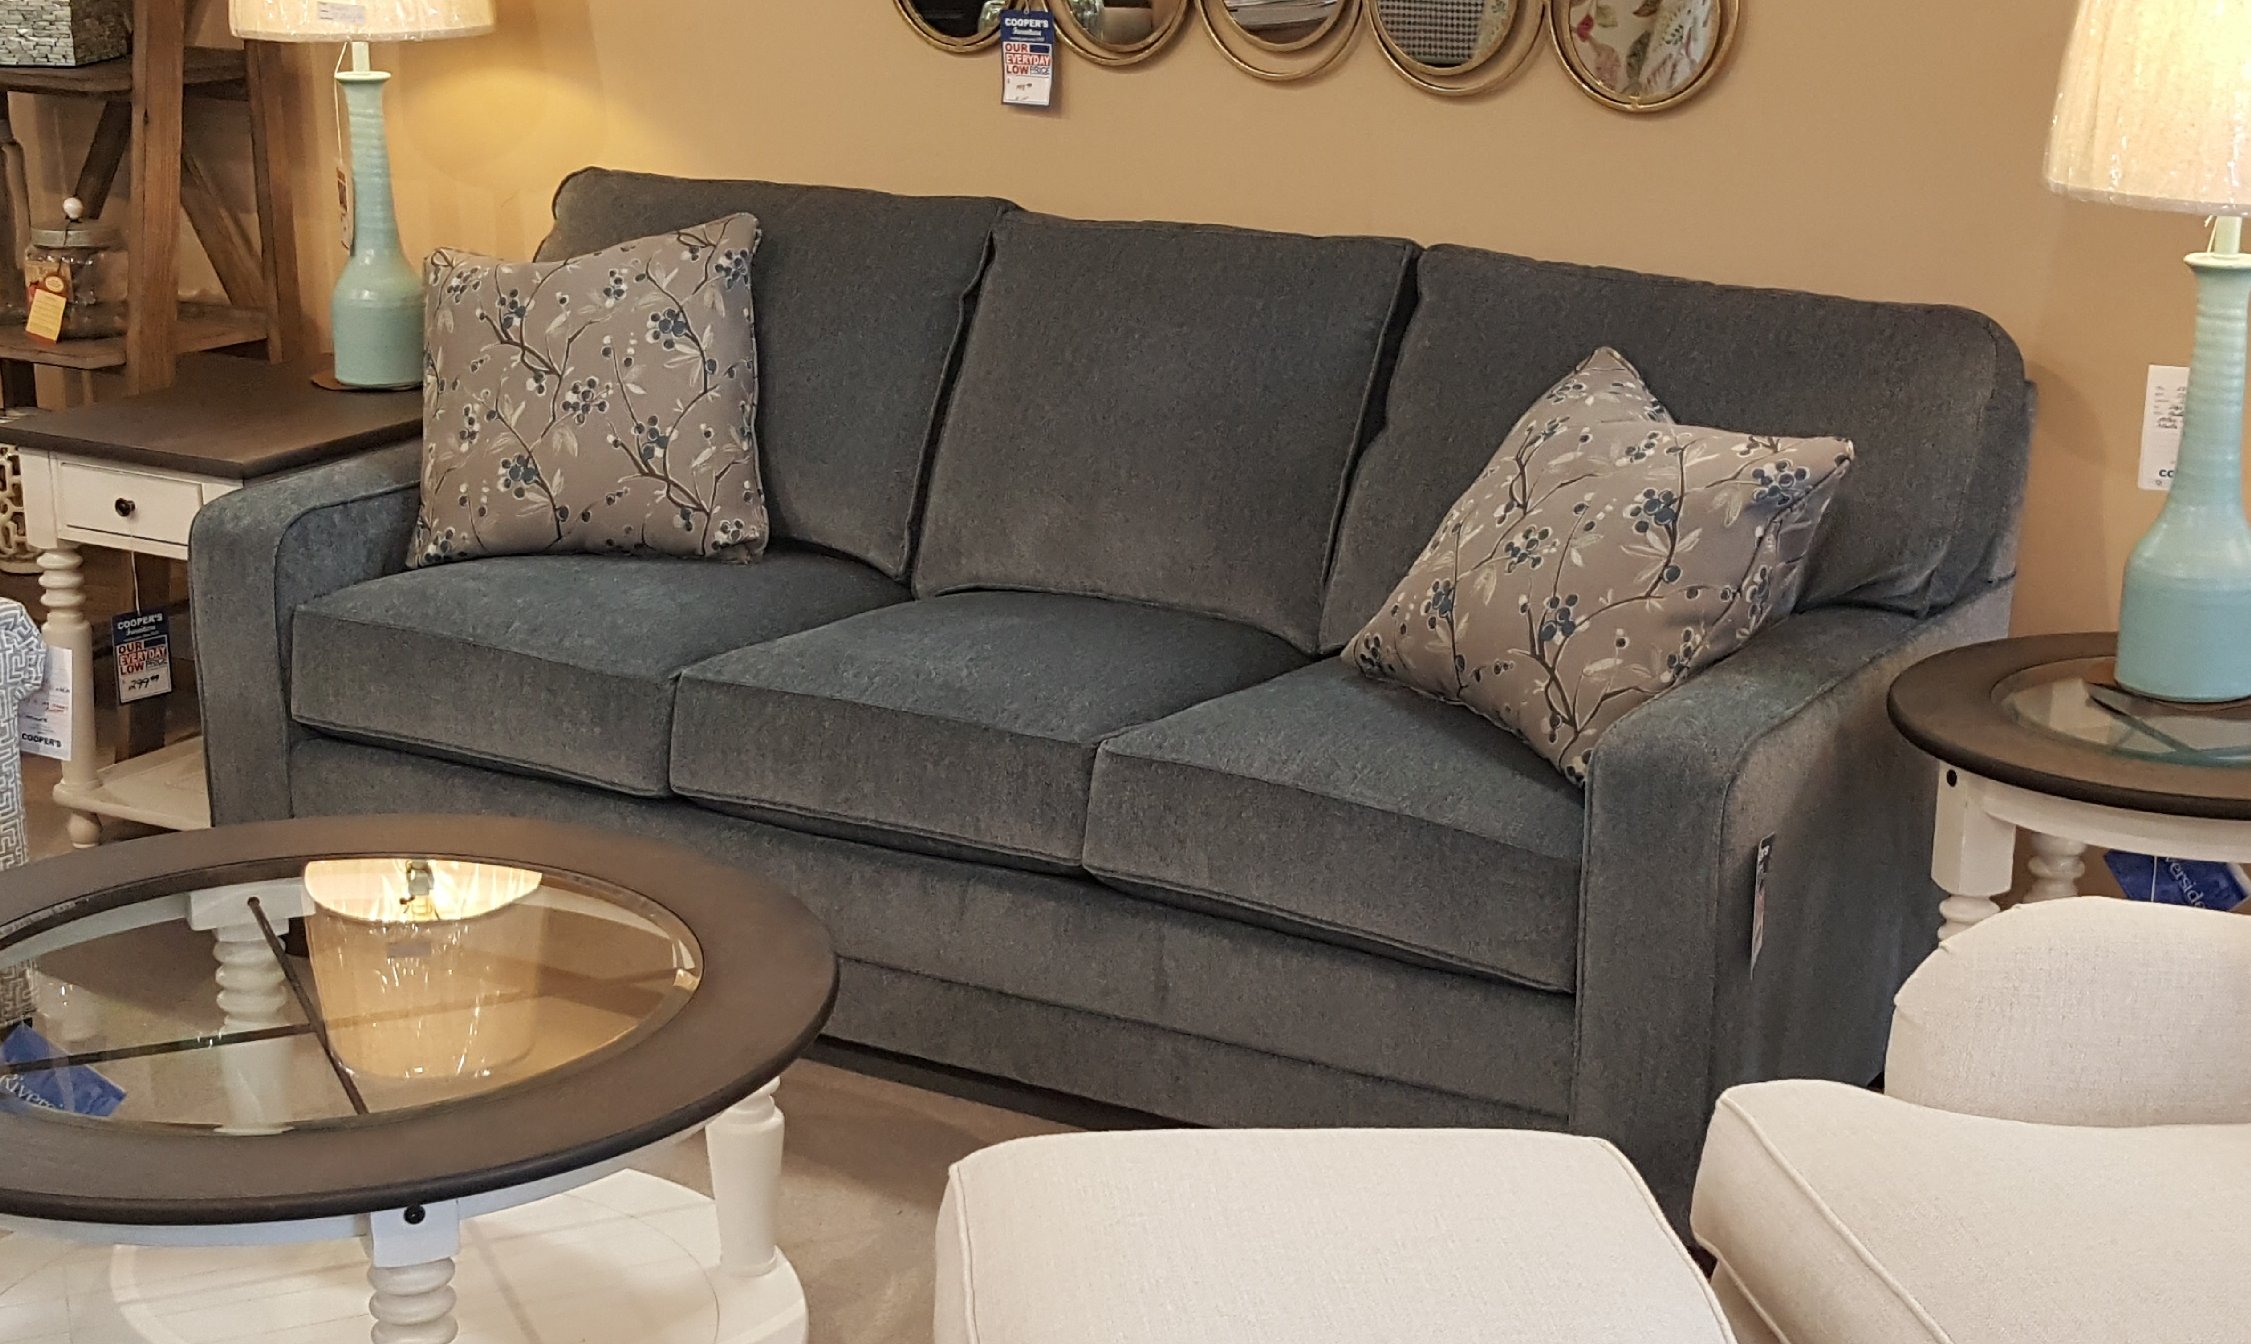 bentley sofa by king hickory crate and barrel axis ii bed living room furniture cary nc sofas recliners sectionals